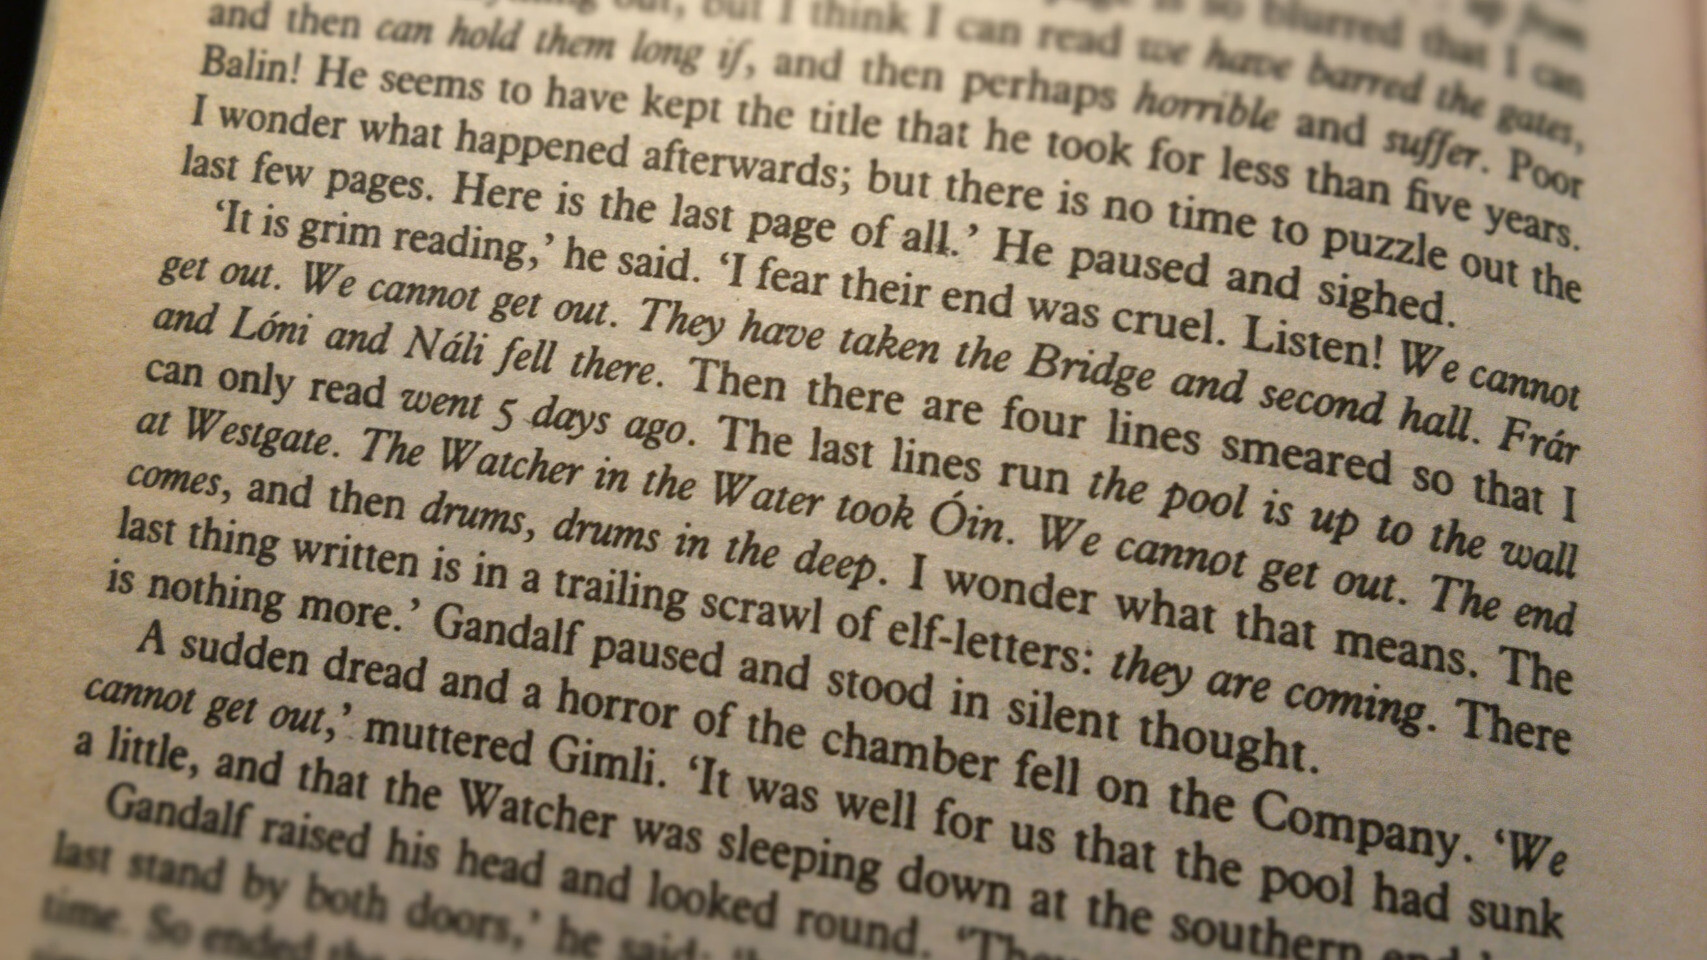 """""""It is grim reading,"""" he said. """"I fear their end was cruel. Listen! 'We cannot get out. We cannot get out. They have taken the Bridge and second hall. Frár and Lóni and Náli fell there.' Then there are four lines smeared so that I can only read 'went 5 days ago'. The last lines run 'the pool is up to the wall at Westgate. The Watcher in the Water took Óin. We cannot get out. The end comes', and then 'drums, drums in the deep'. I wonder what that means. The last thing written is a trailing scrawl of elf-letters: 'they are coming'. There is nothing more."""" Gandalf paused and stood in silent thought."""